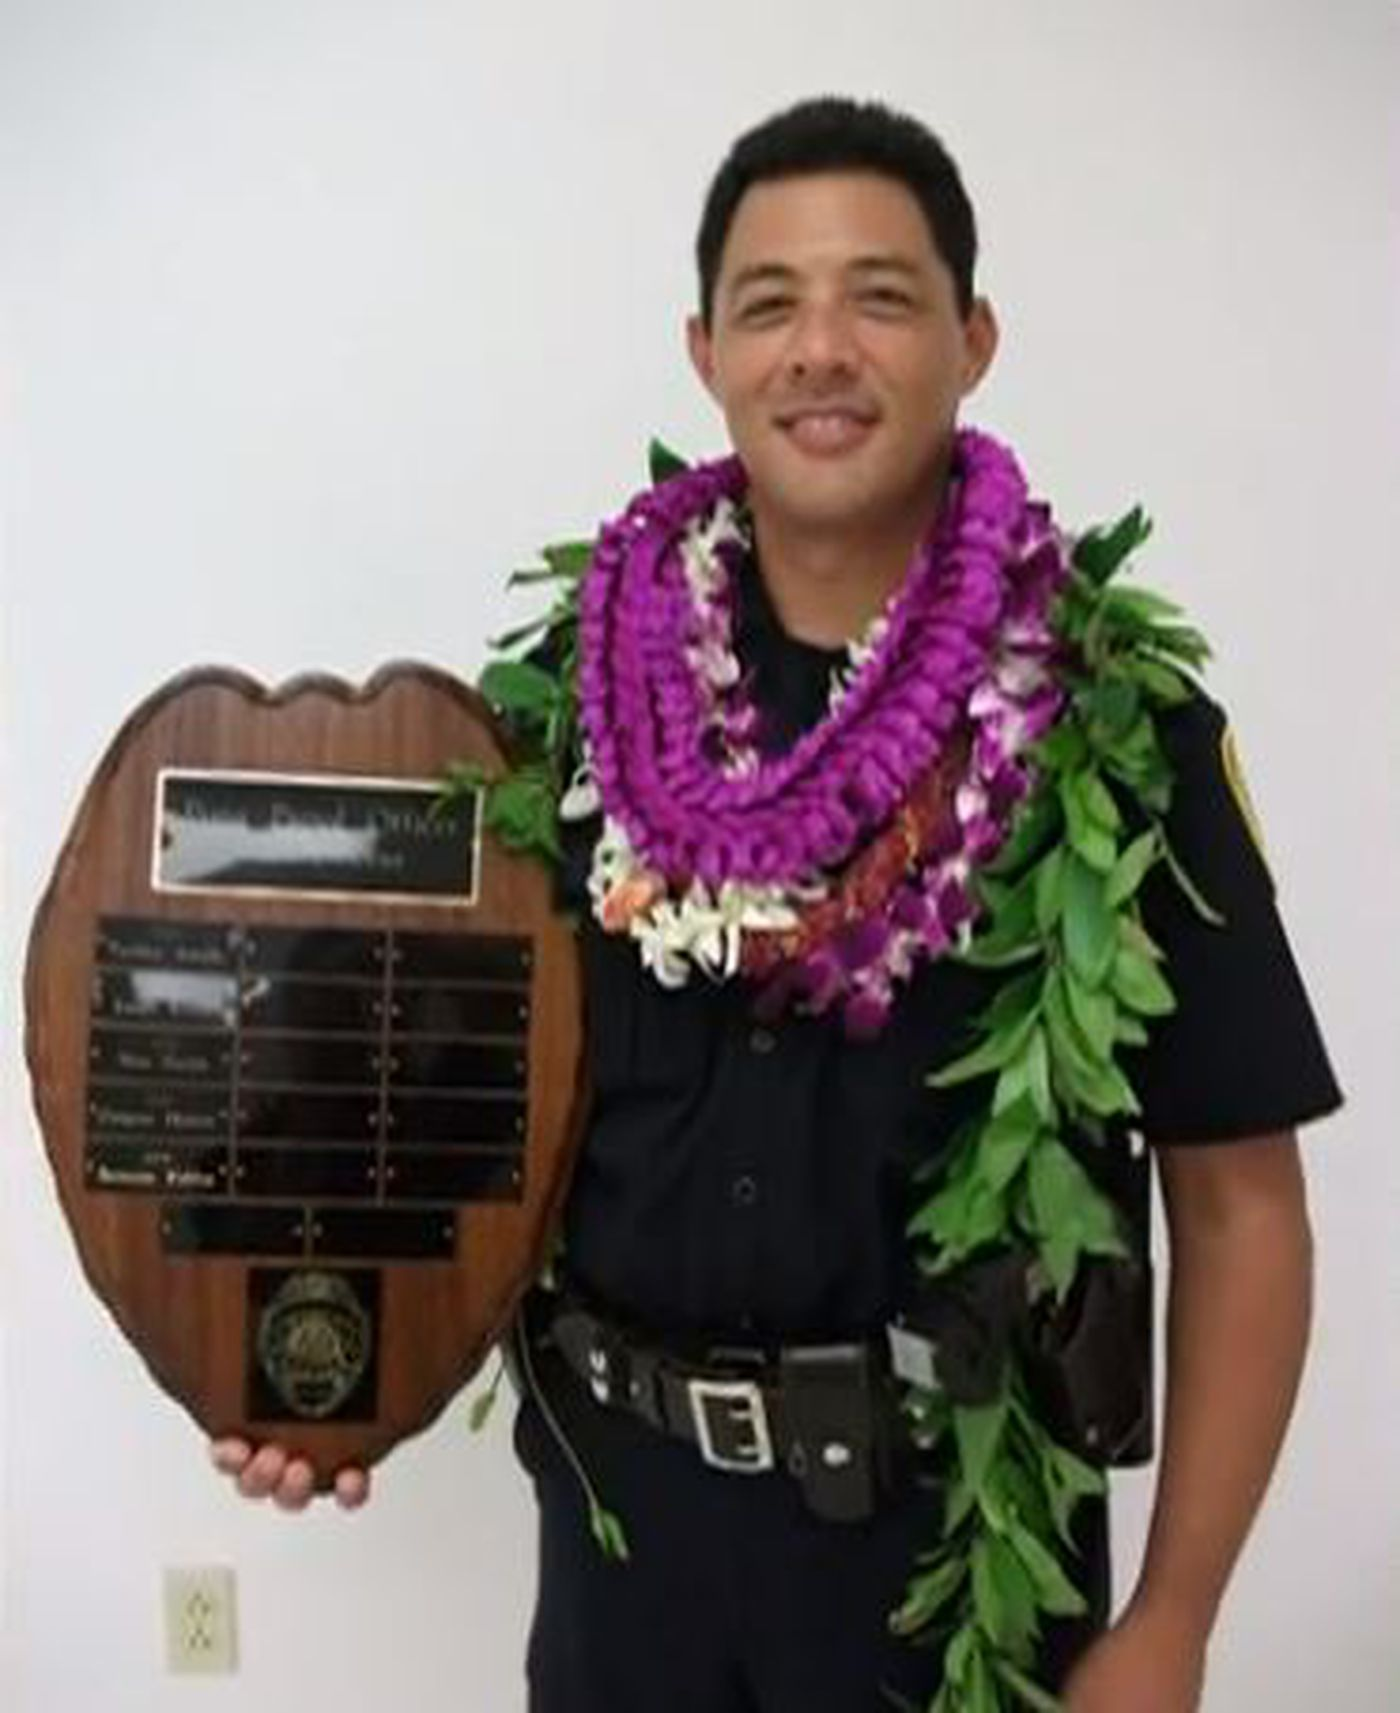 Honolulu Has Lost 2 Officers In The Same Shooting Twice